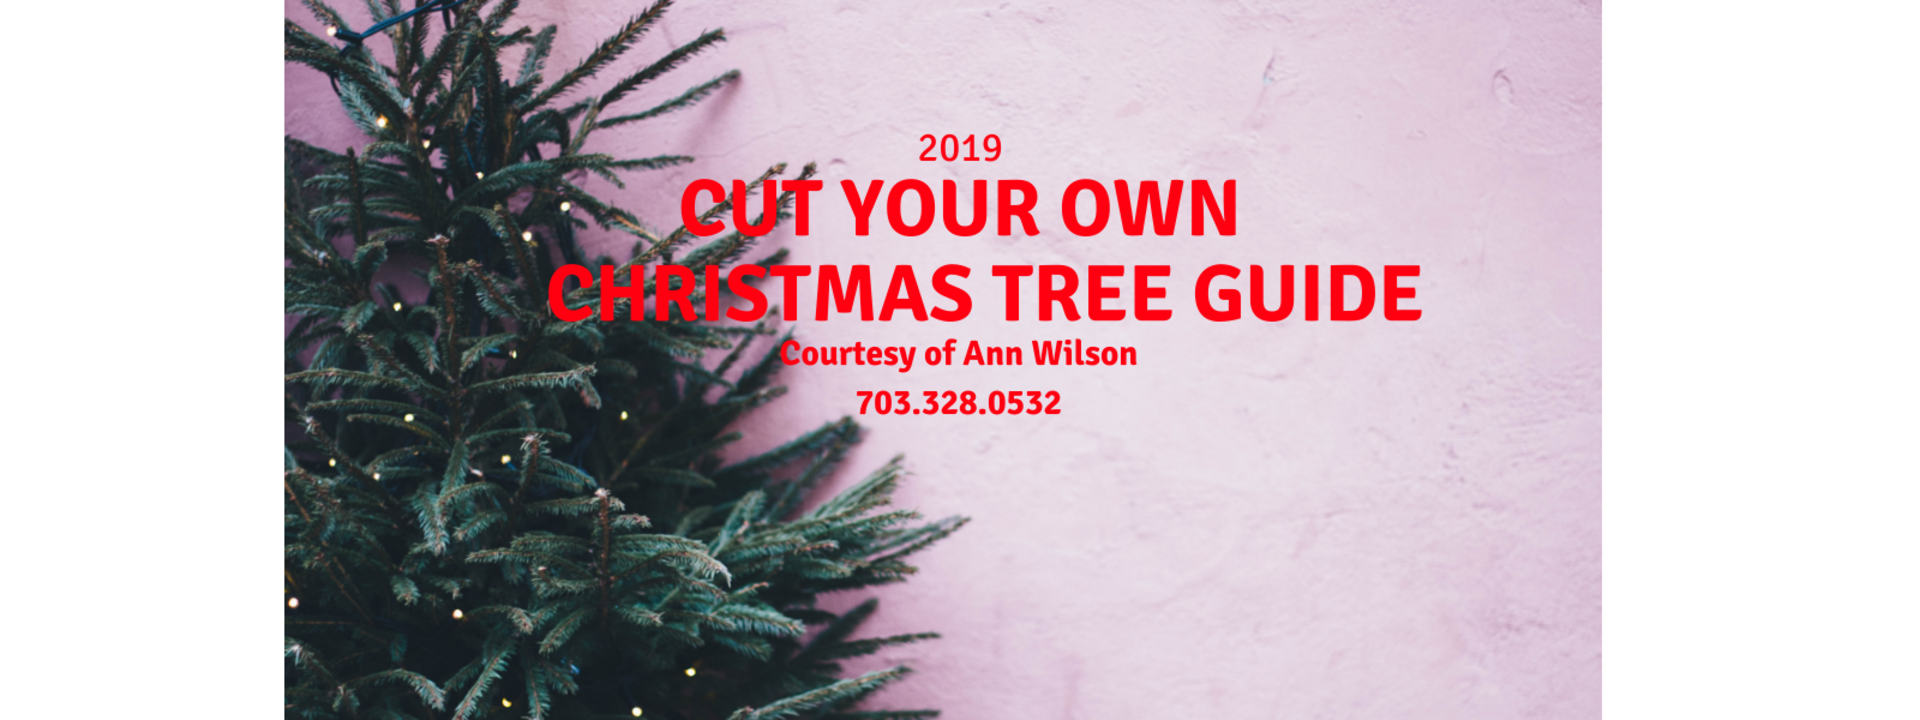 2019 Cut Your Own Christmas Tree Guide